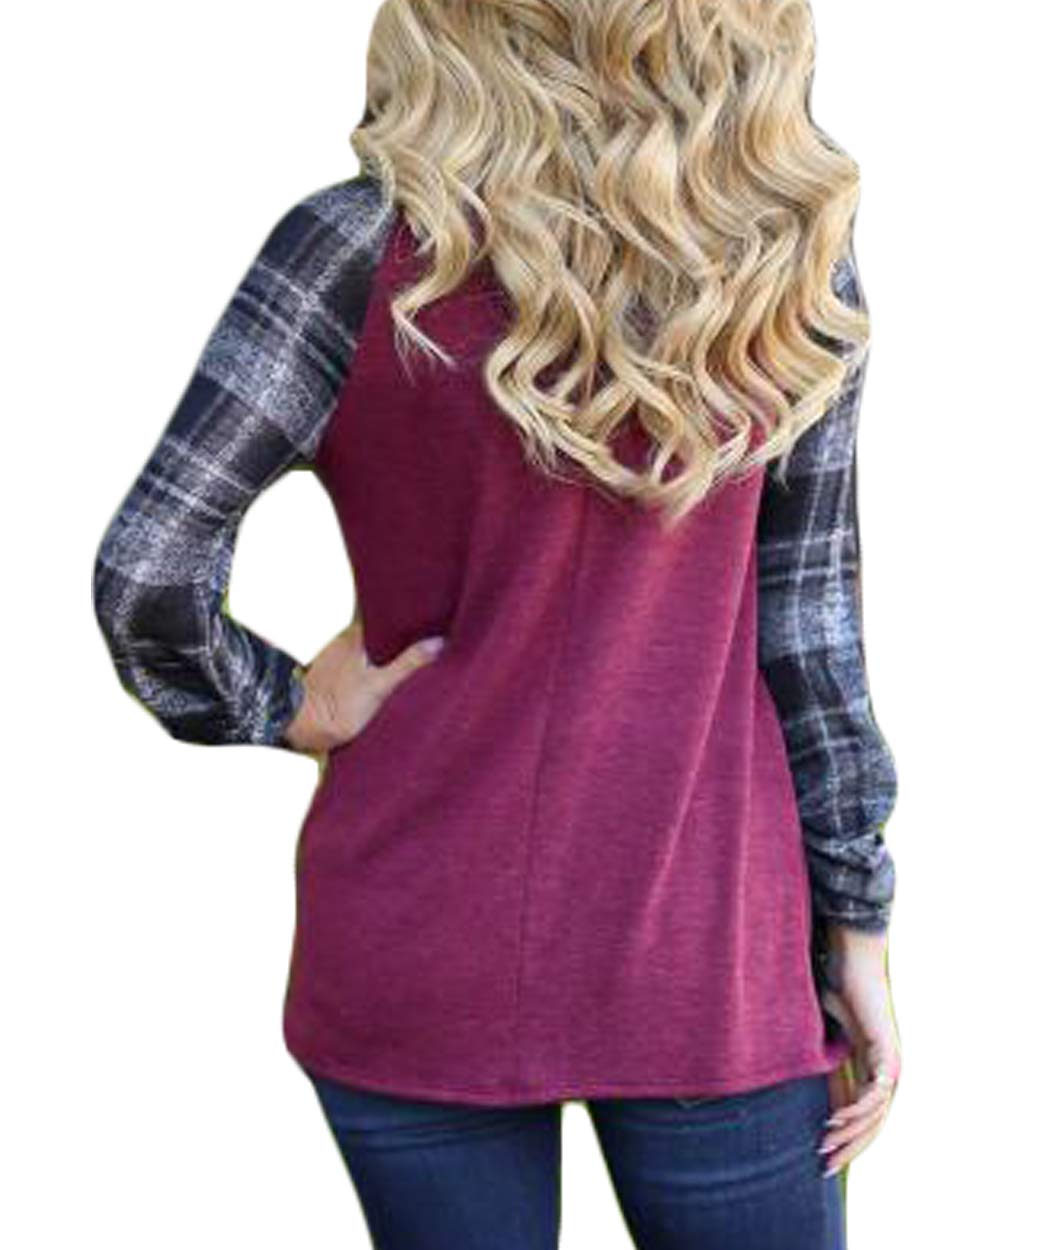 Eanklosco Women Long Sleeve Tops Plaid Patchwork Shirt Casual Round Neck Color Block Tunic Blouse (M, Purple)